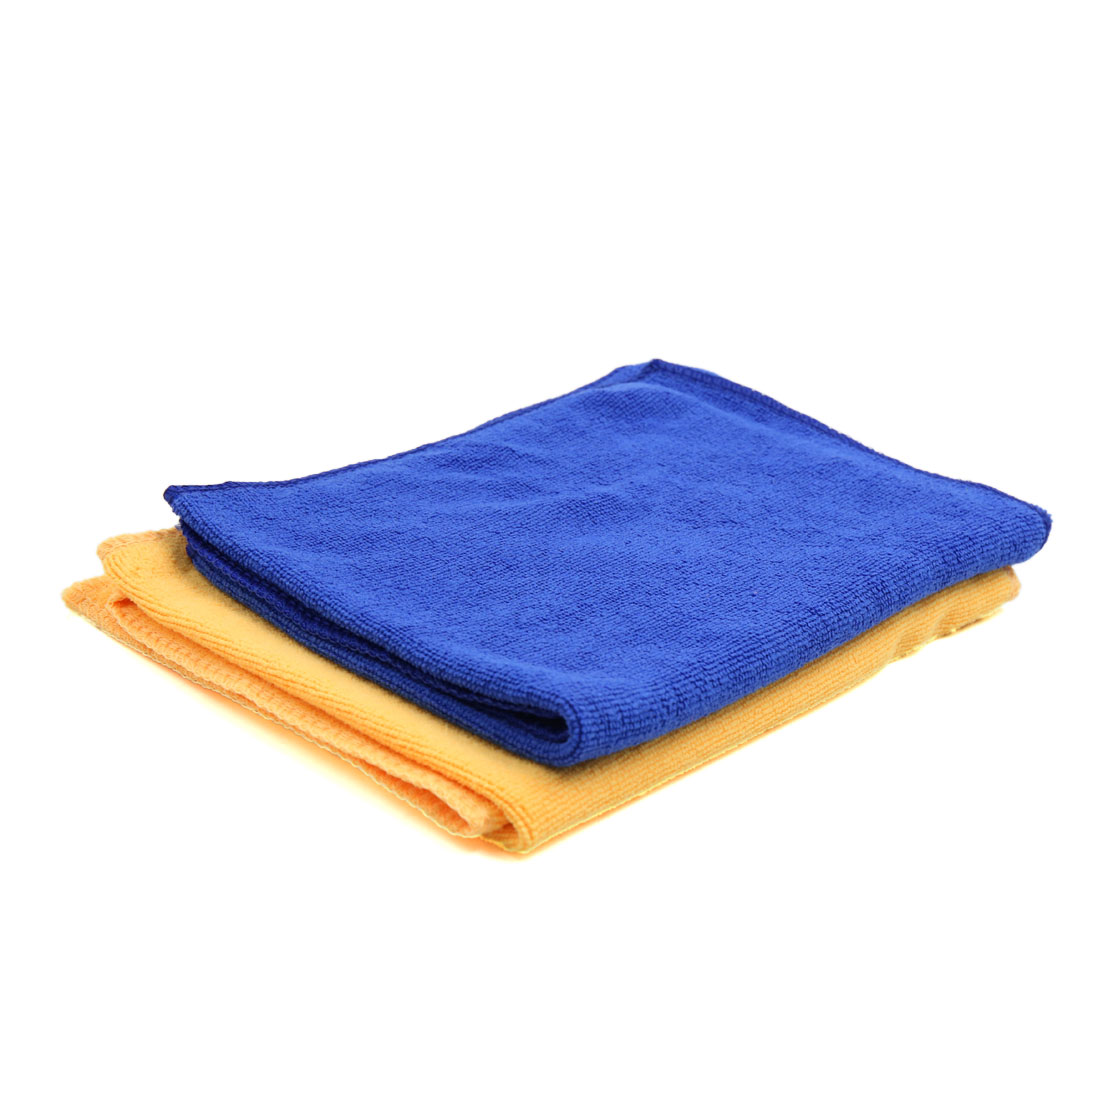 2pcs 65 x 33cm 250GSM Microfiber Towel Clean Cloths for Car Washing Blue Yellow - image 5 of 5